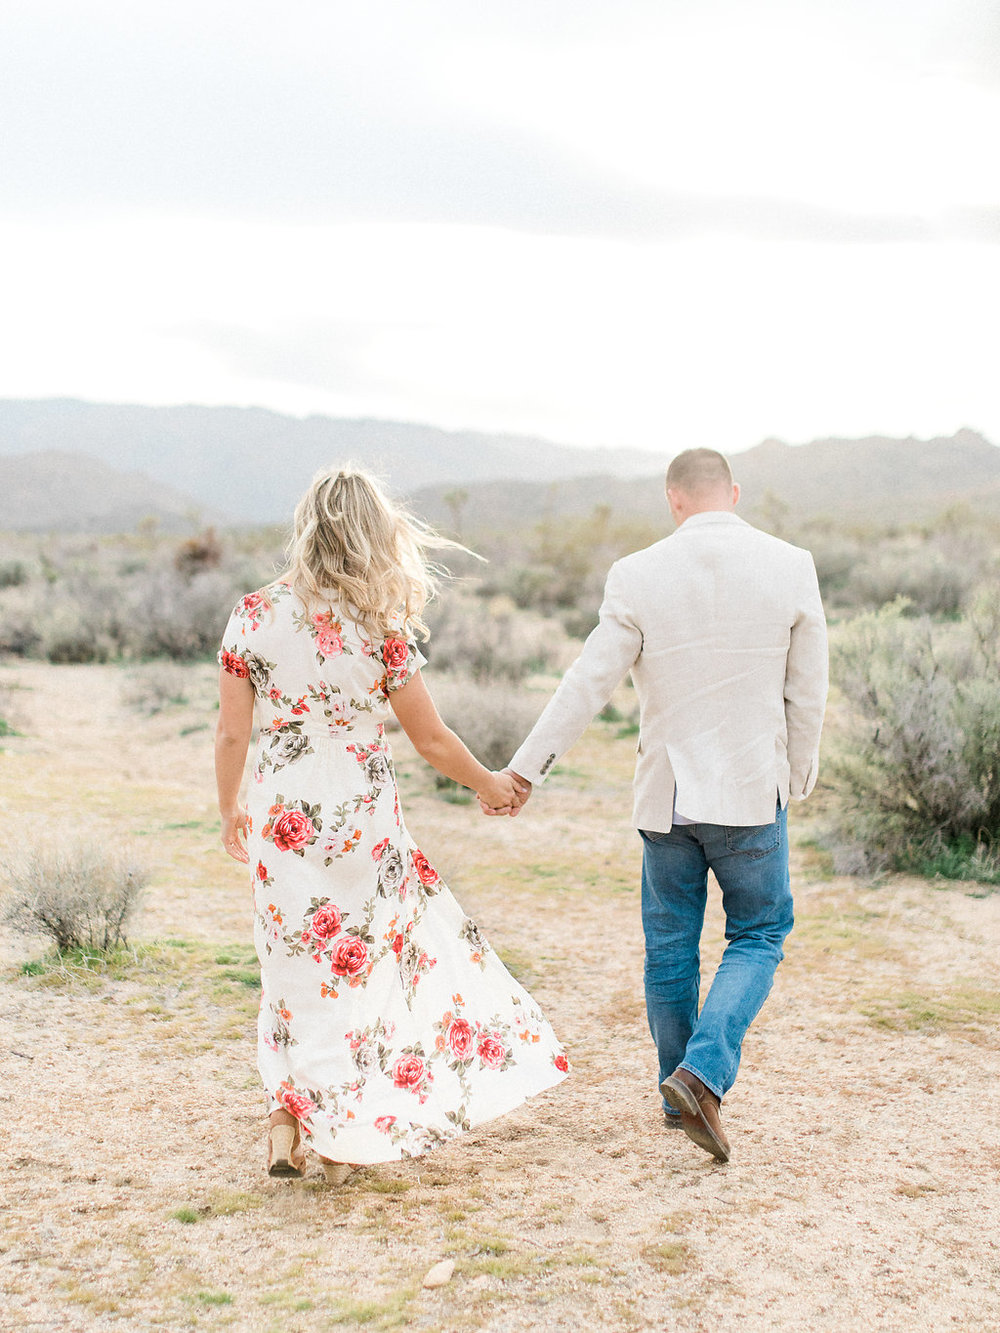 Joshua Tree Engagement Session | What to Wear for Pictures | Southern California Wedding Photographer | Mastin Labs Fuji Film | Fine Art Photographer | Desert Shoot | Hand in Hand Gorgeous Dress.jpg